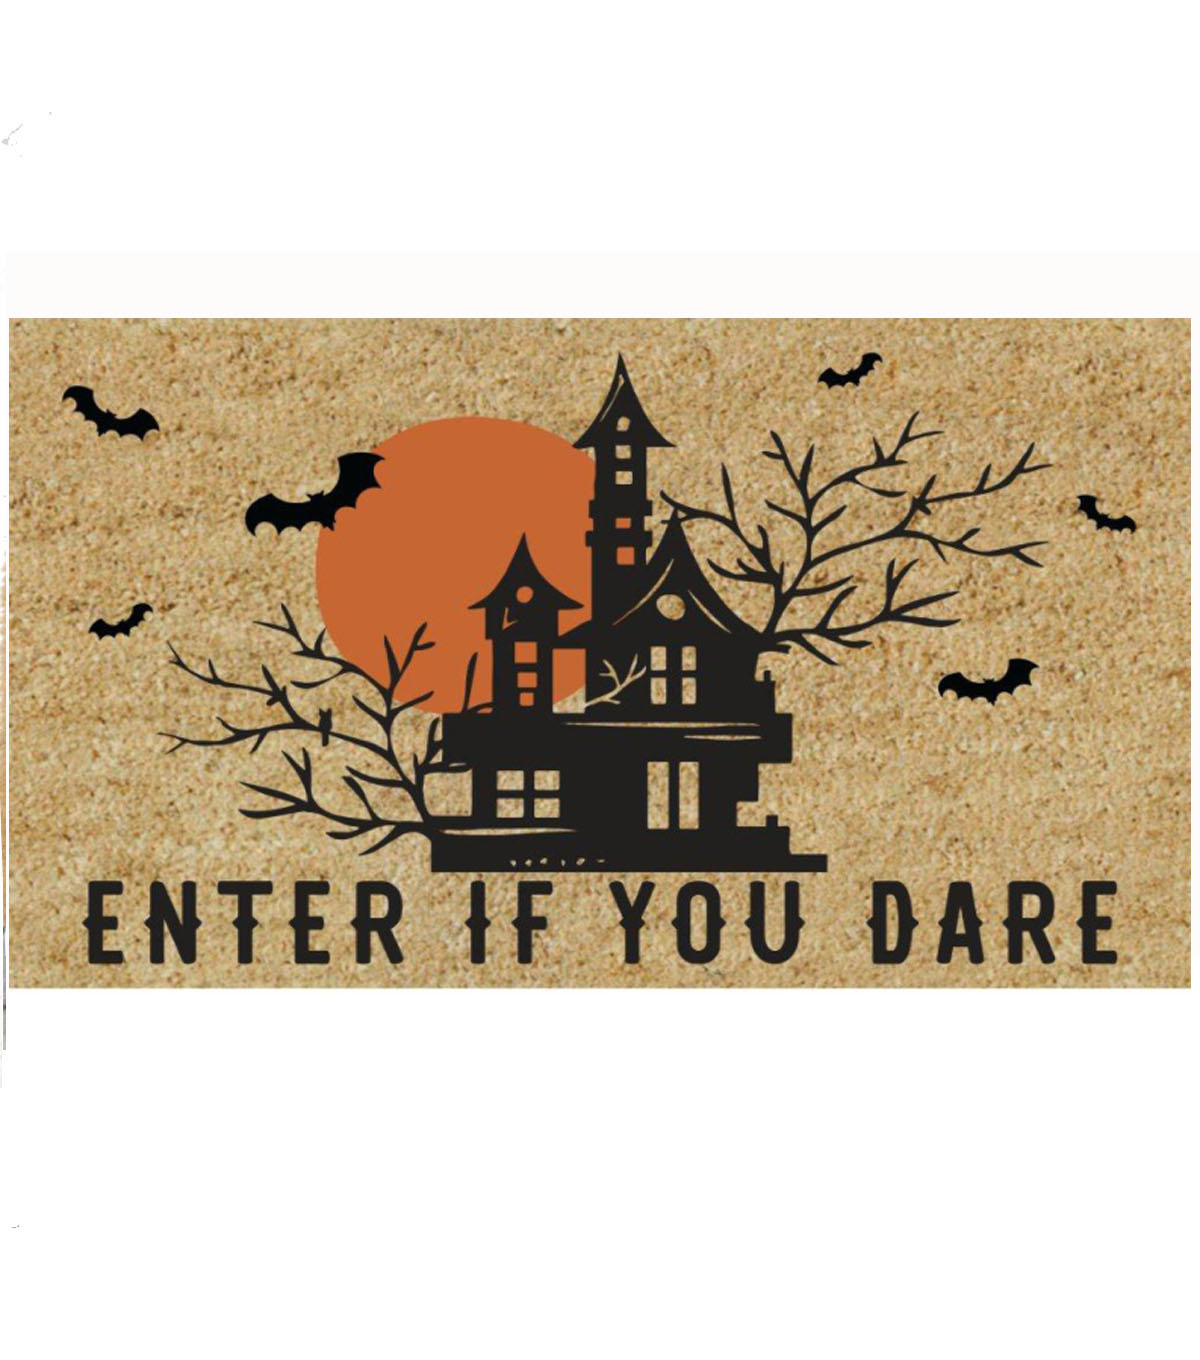 Maker\u0027s Halloween Tufted Coir Mat-Enter if You Dare & House on Natural